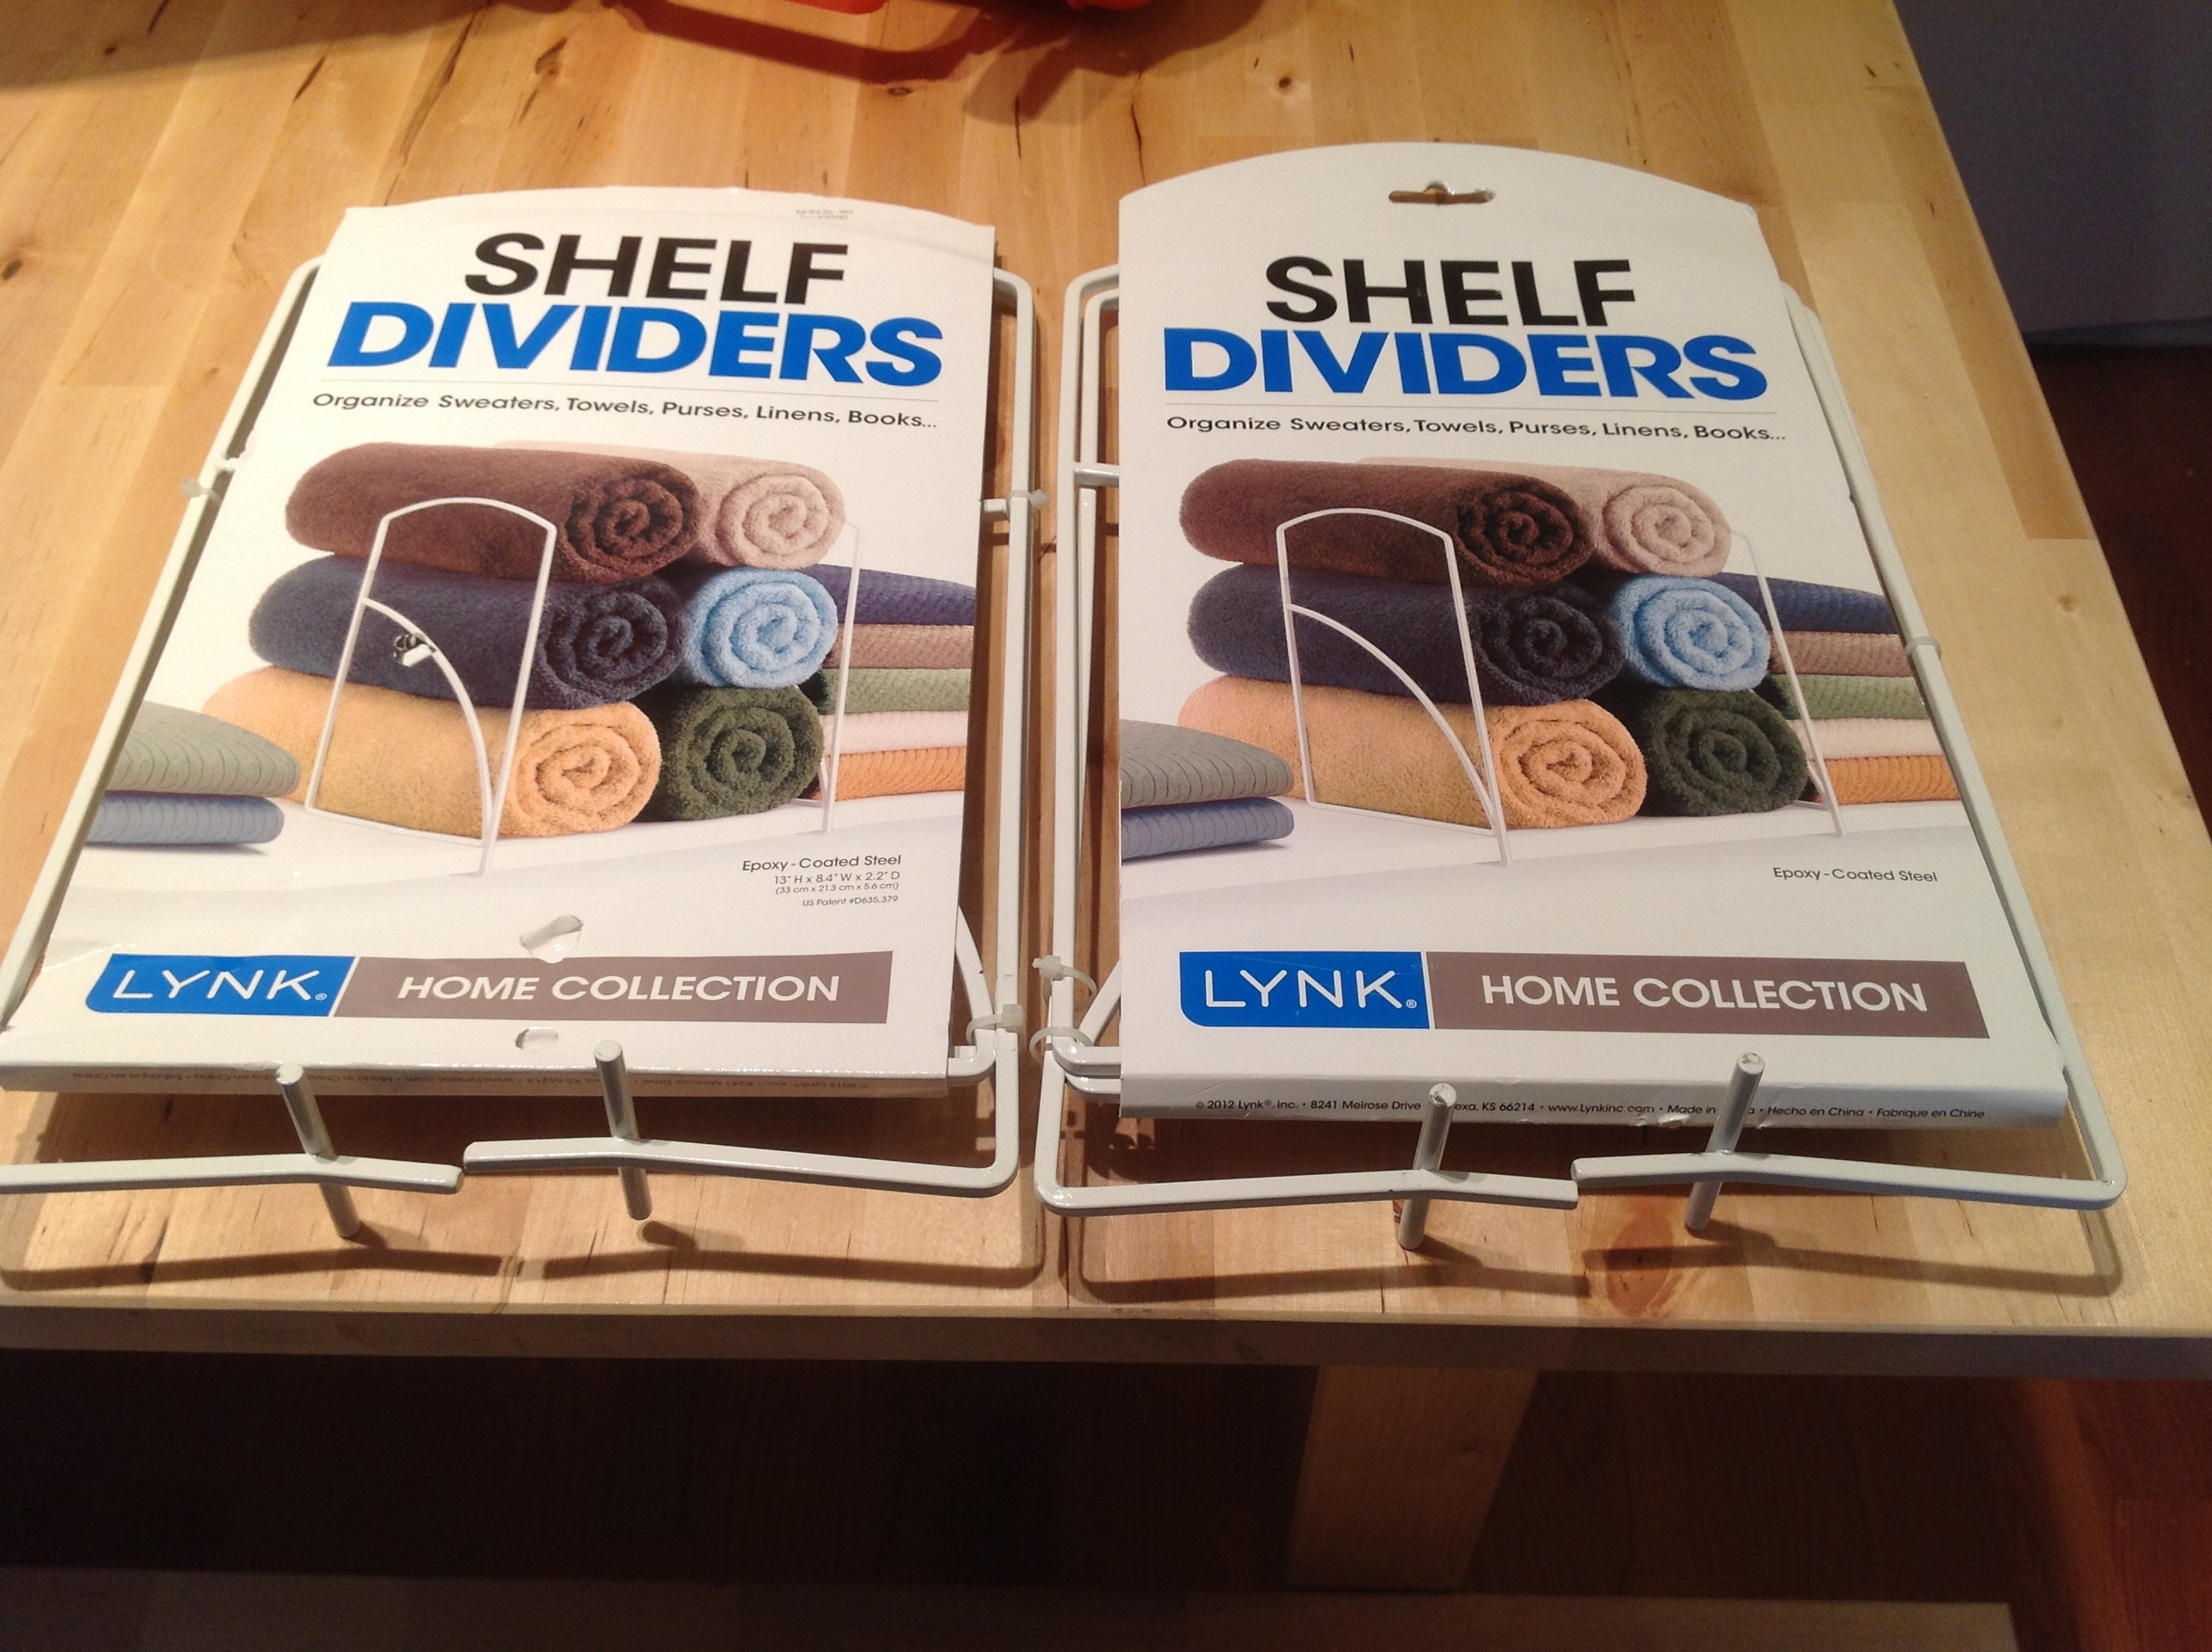 Lynk Shelf Dividers